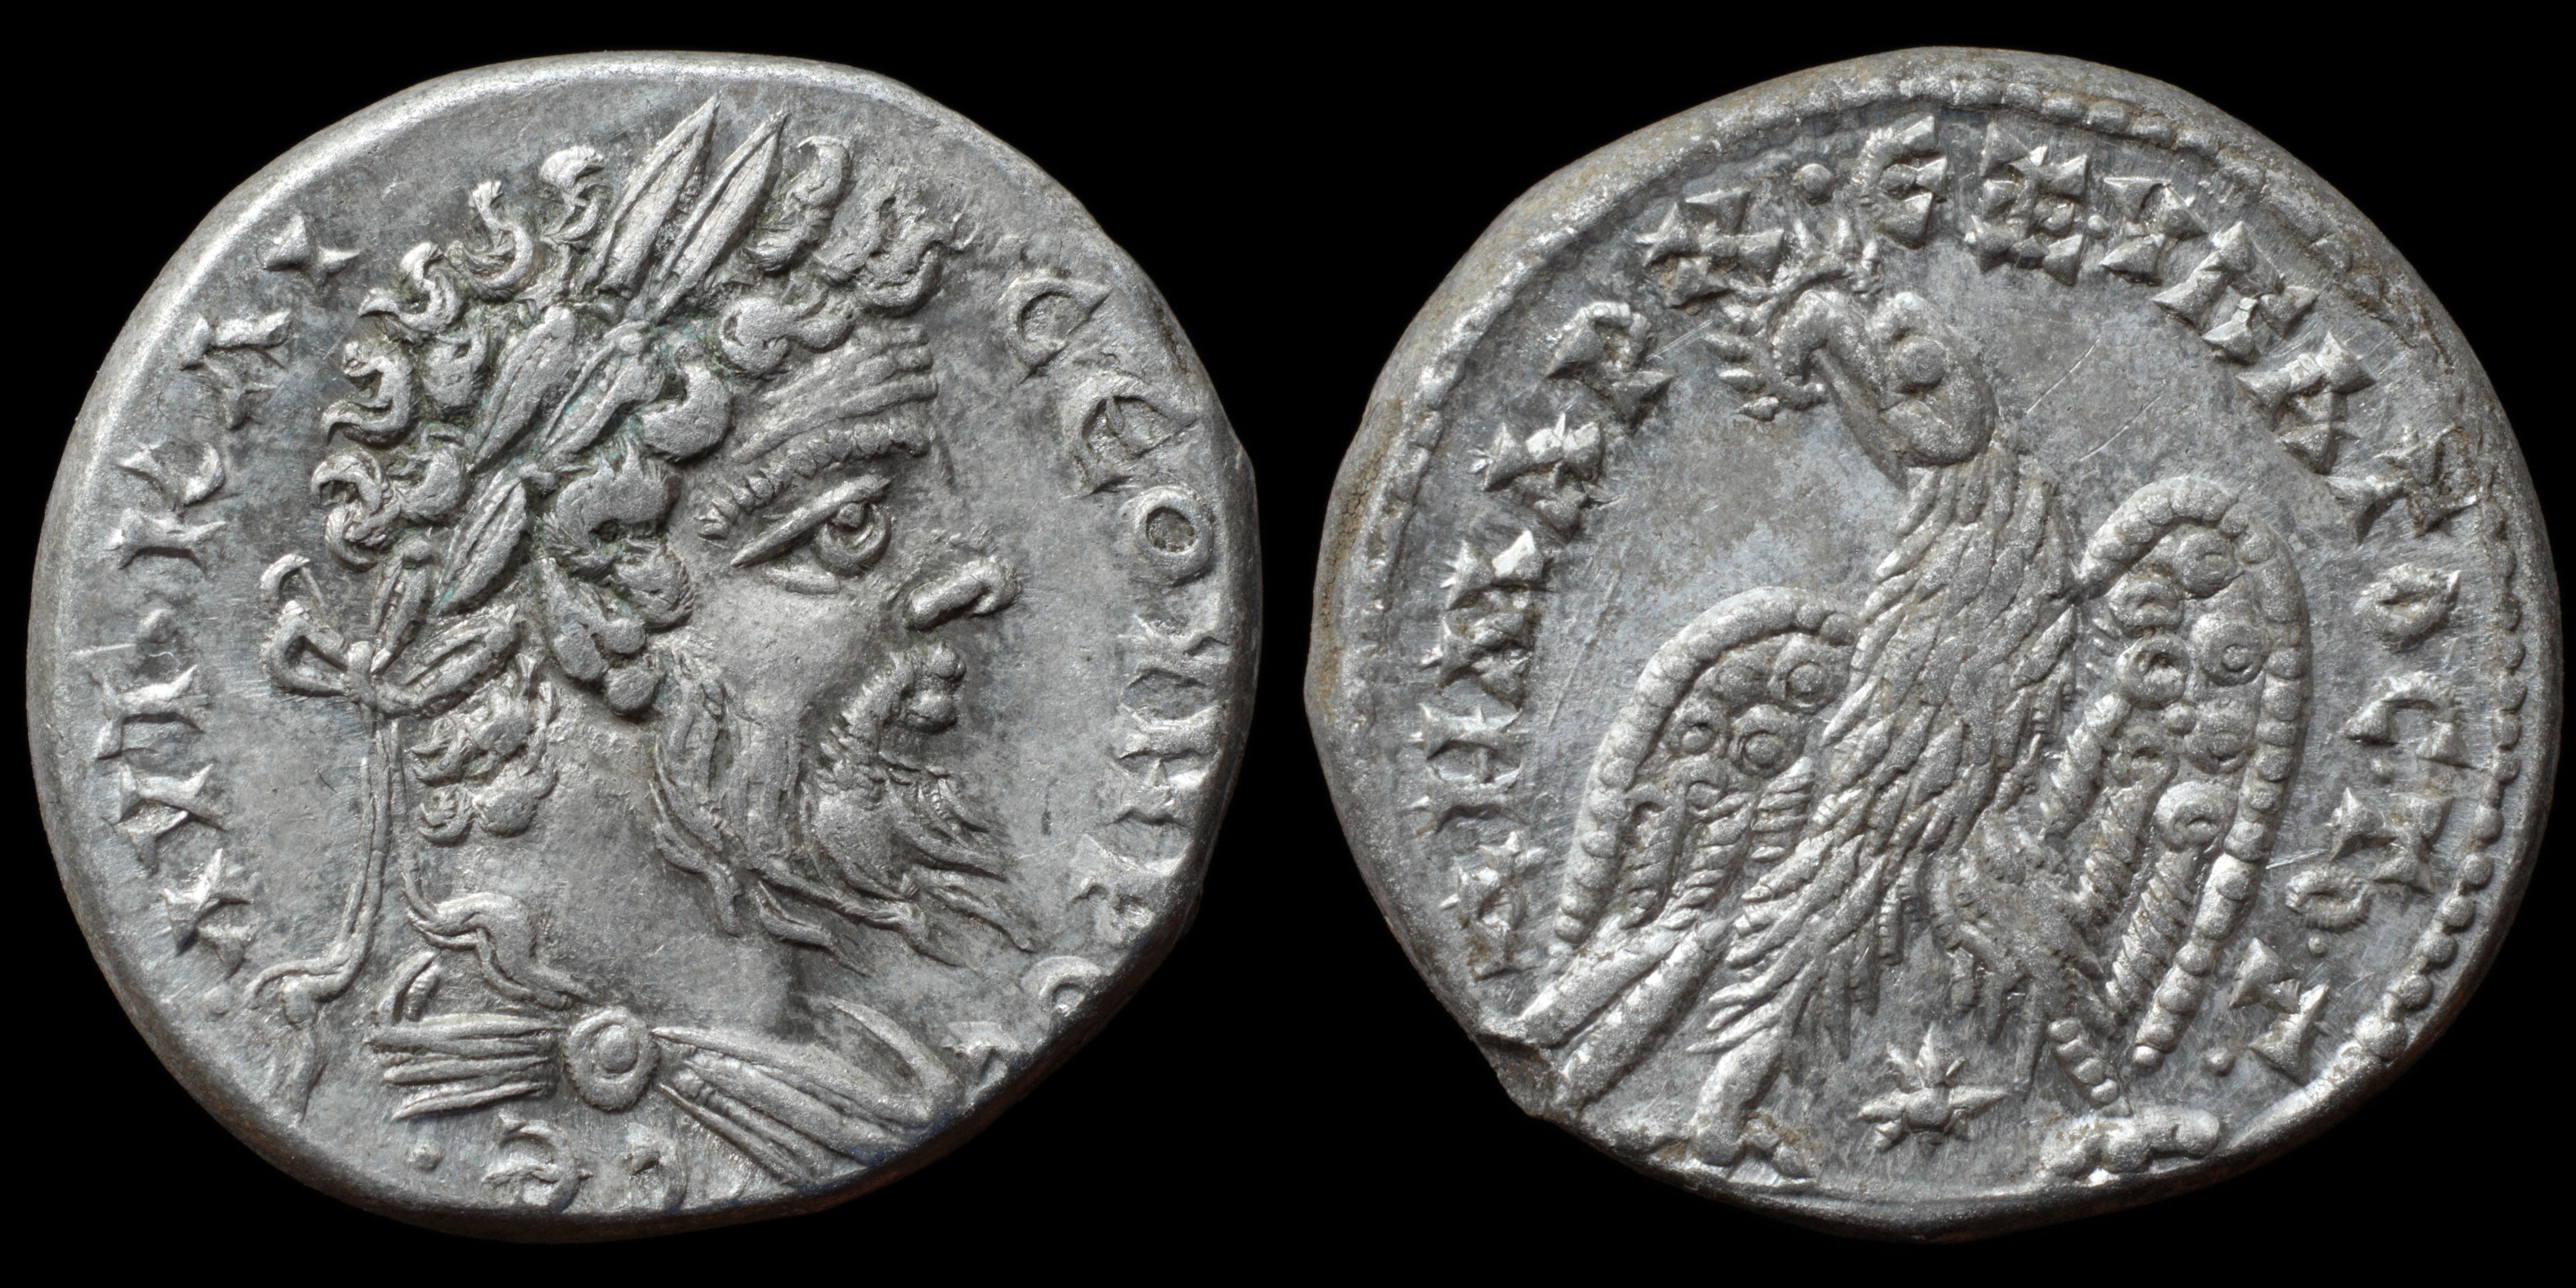 /Files/Images/Coinsite/CoinDB/1484_Septimius_Severus_Laodicea.jpg